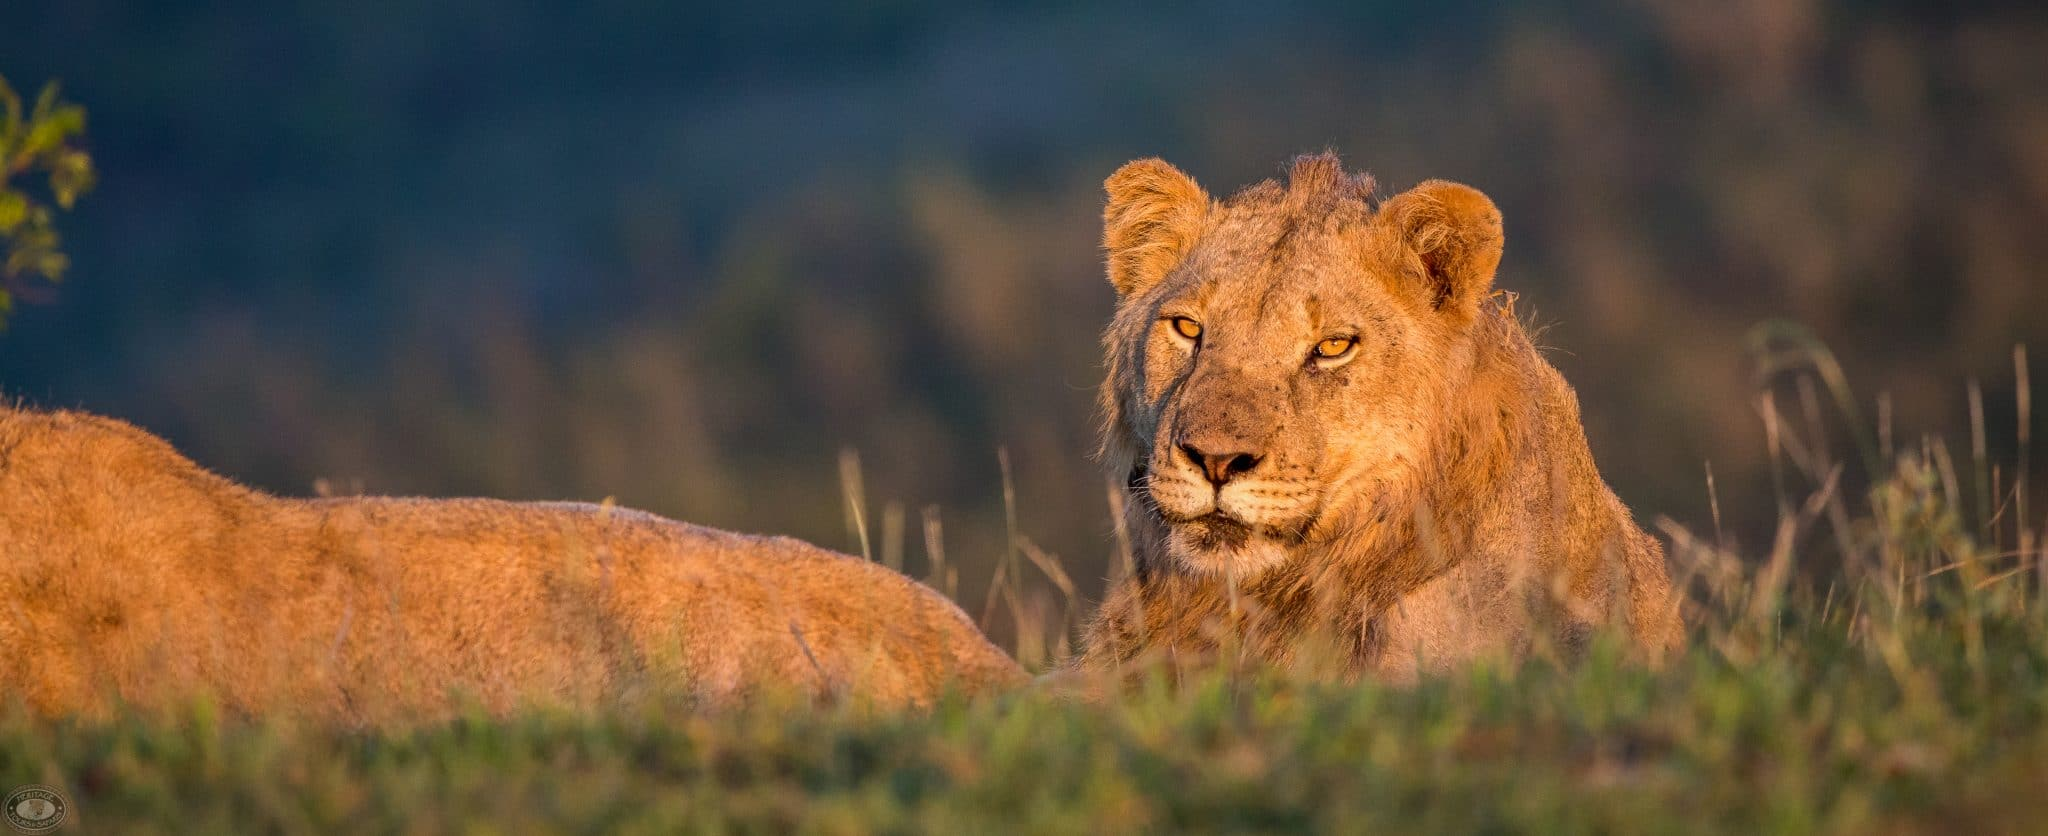 safari sunrise lion